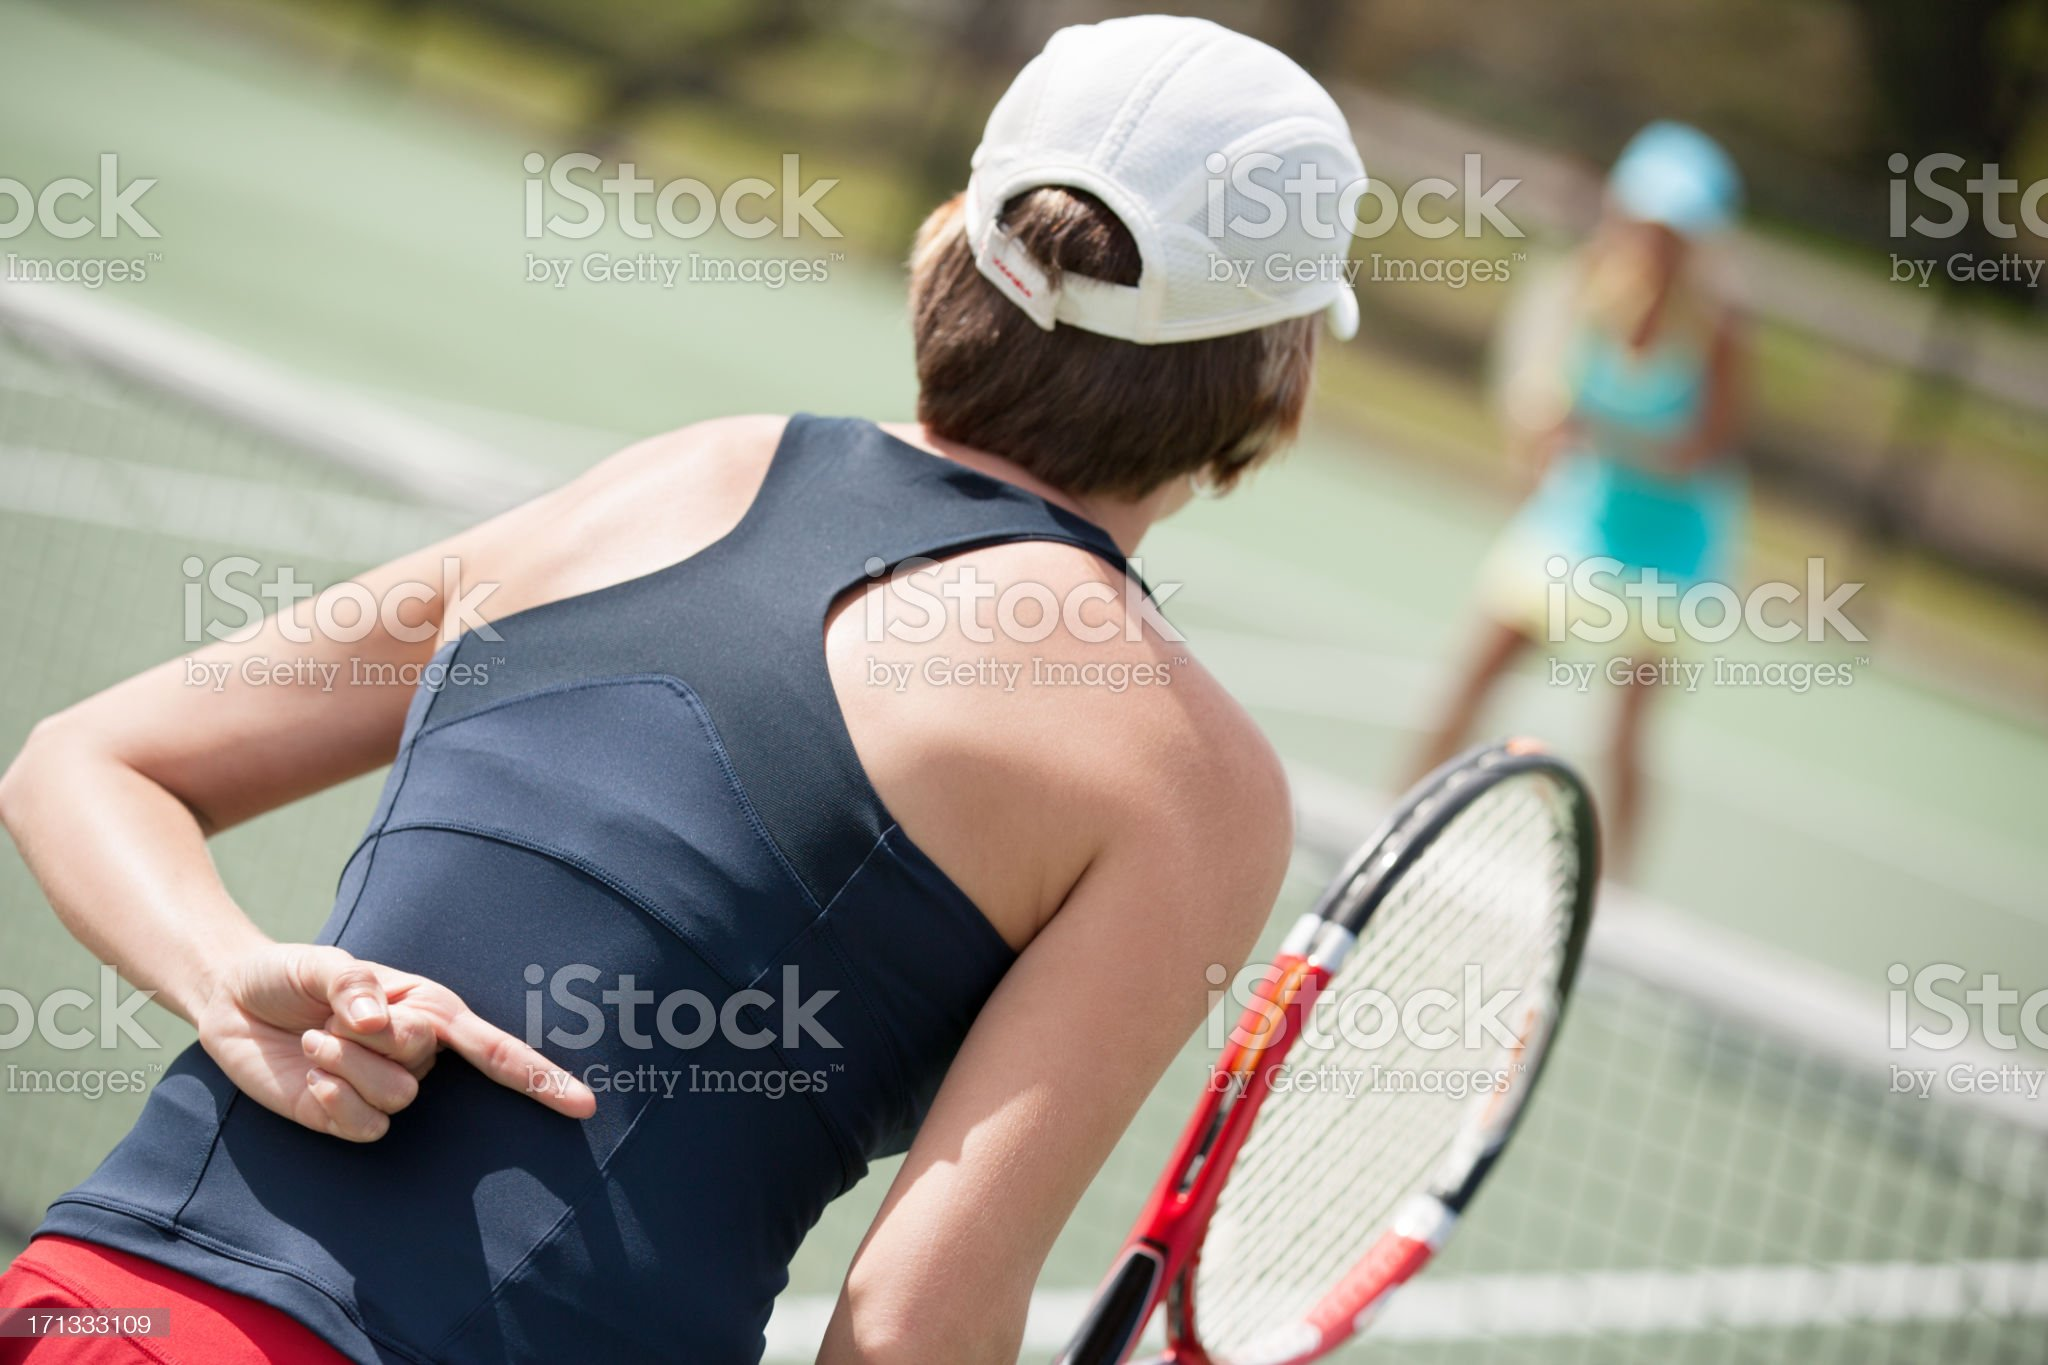 women's doubles tennis hand signal royalty-free stock photo